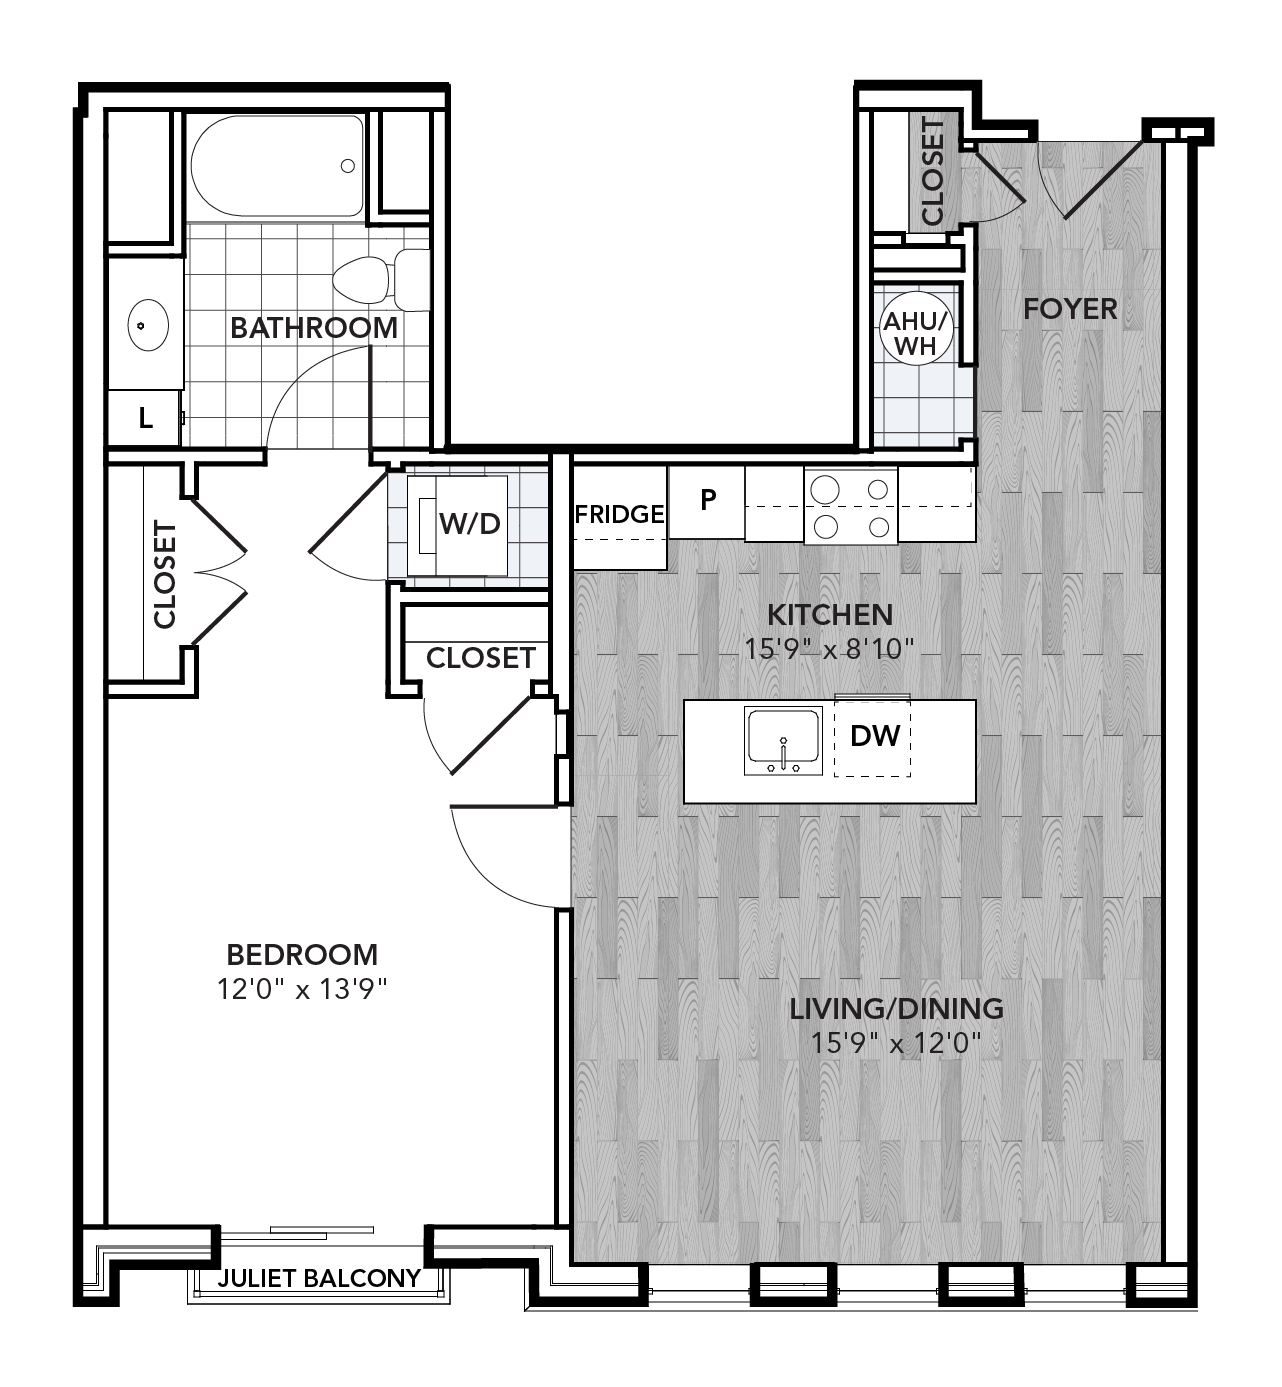 Chestnut square a101 816